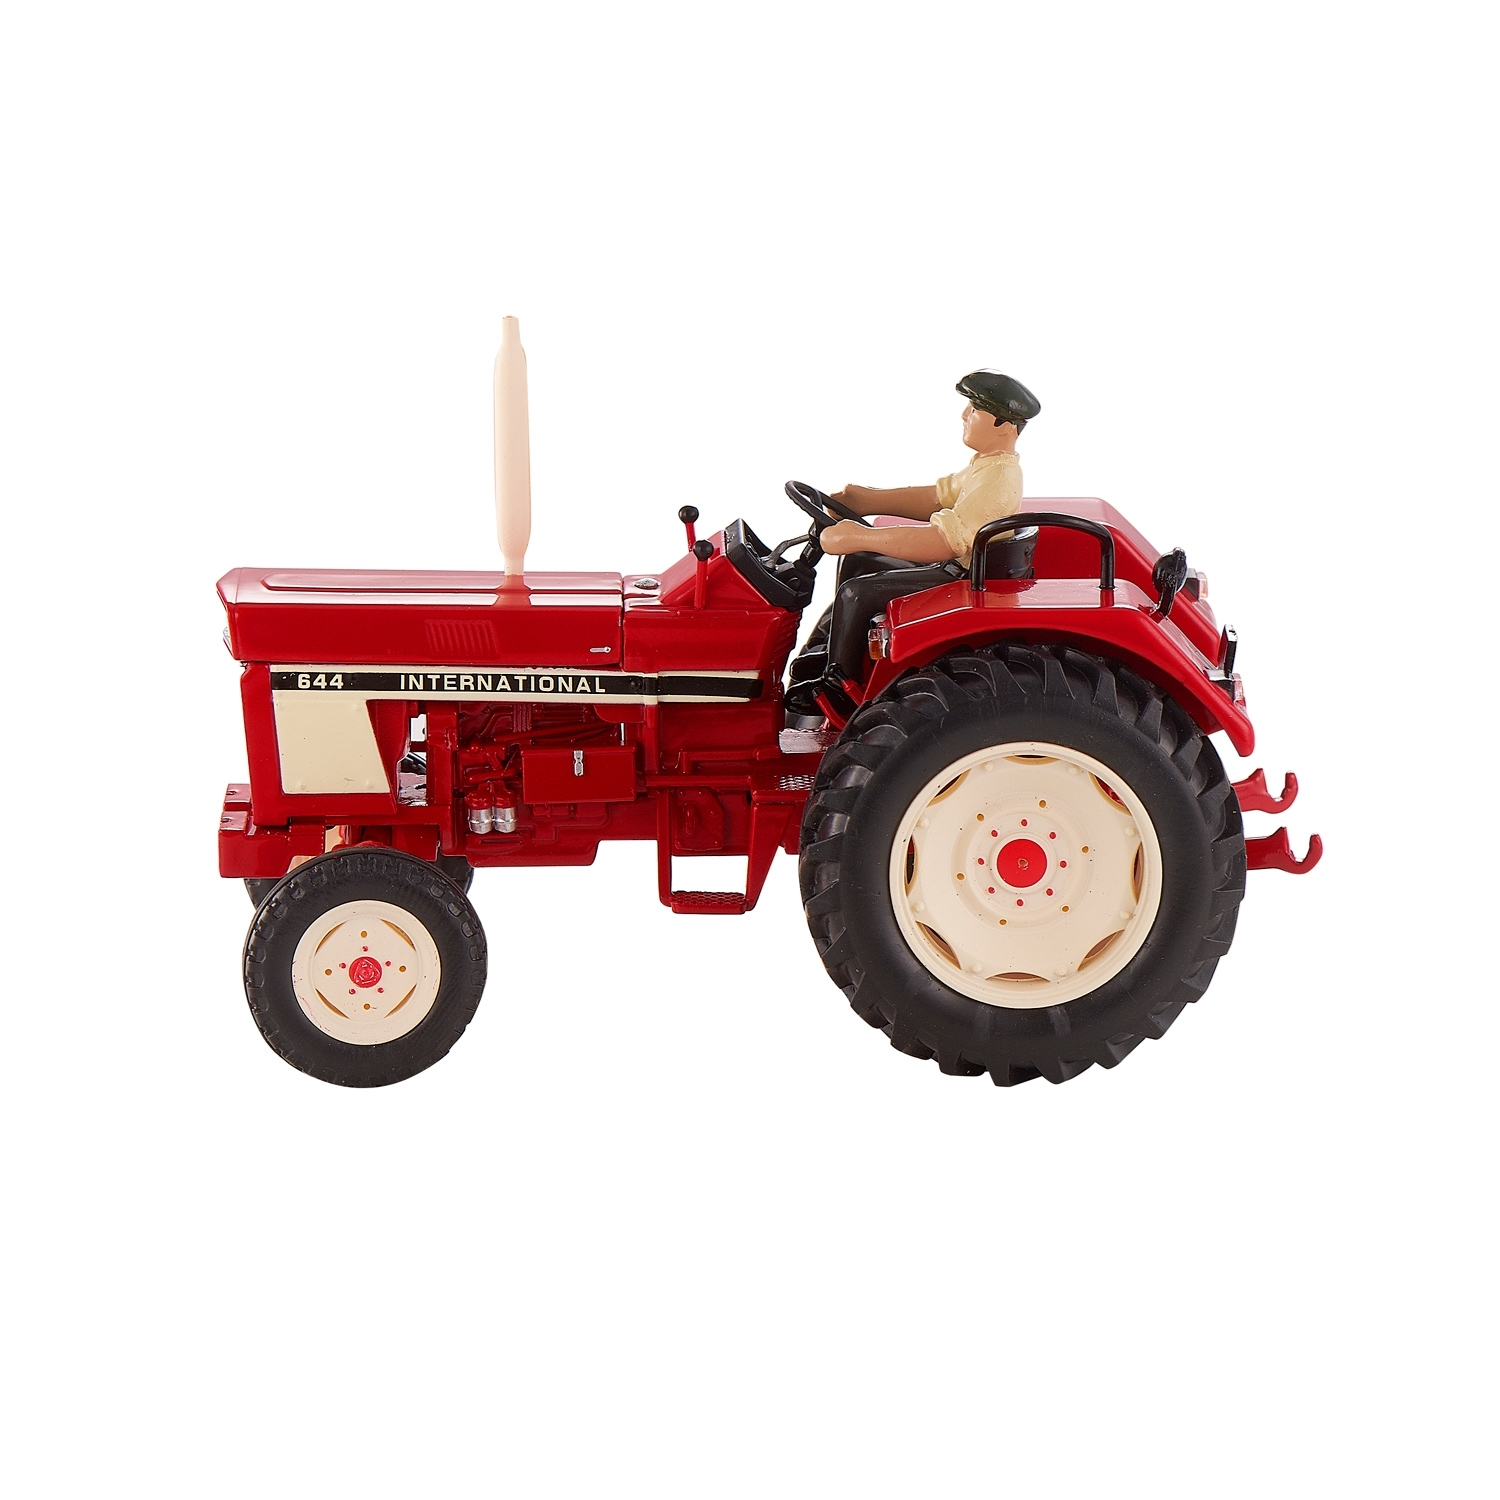 Case International Harvester : Case ih international harvester model